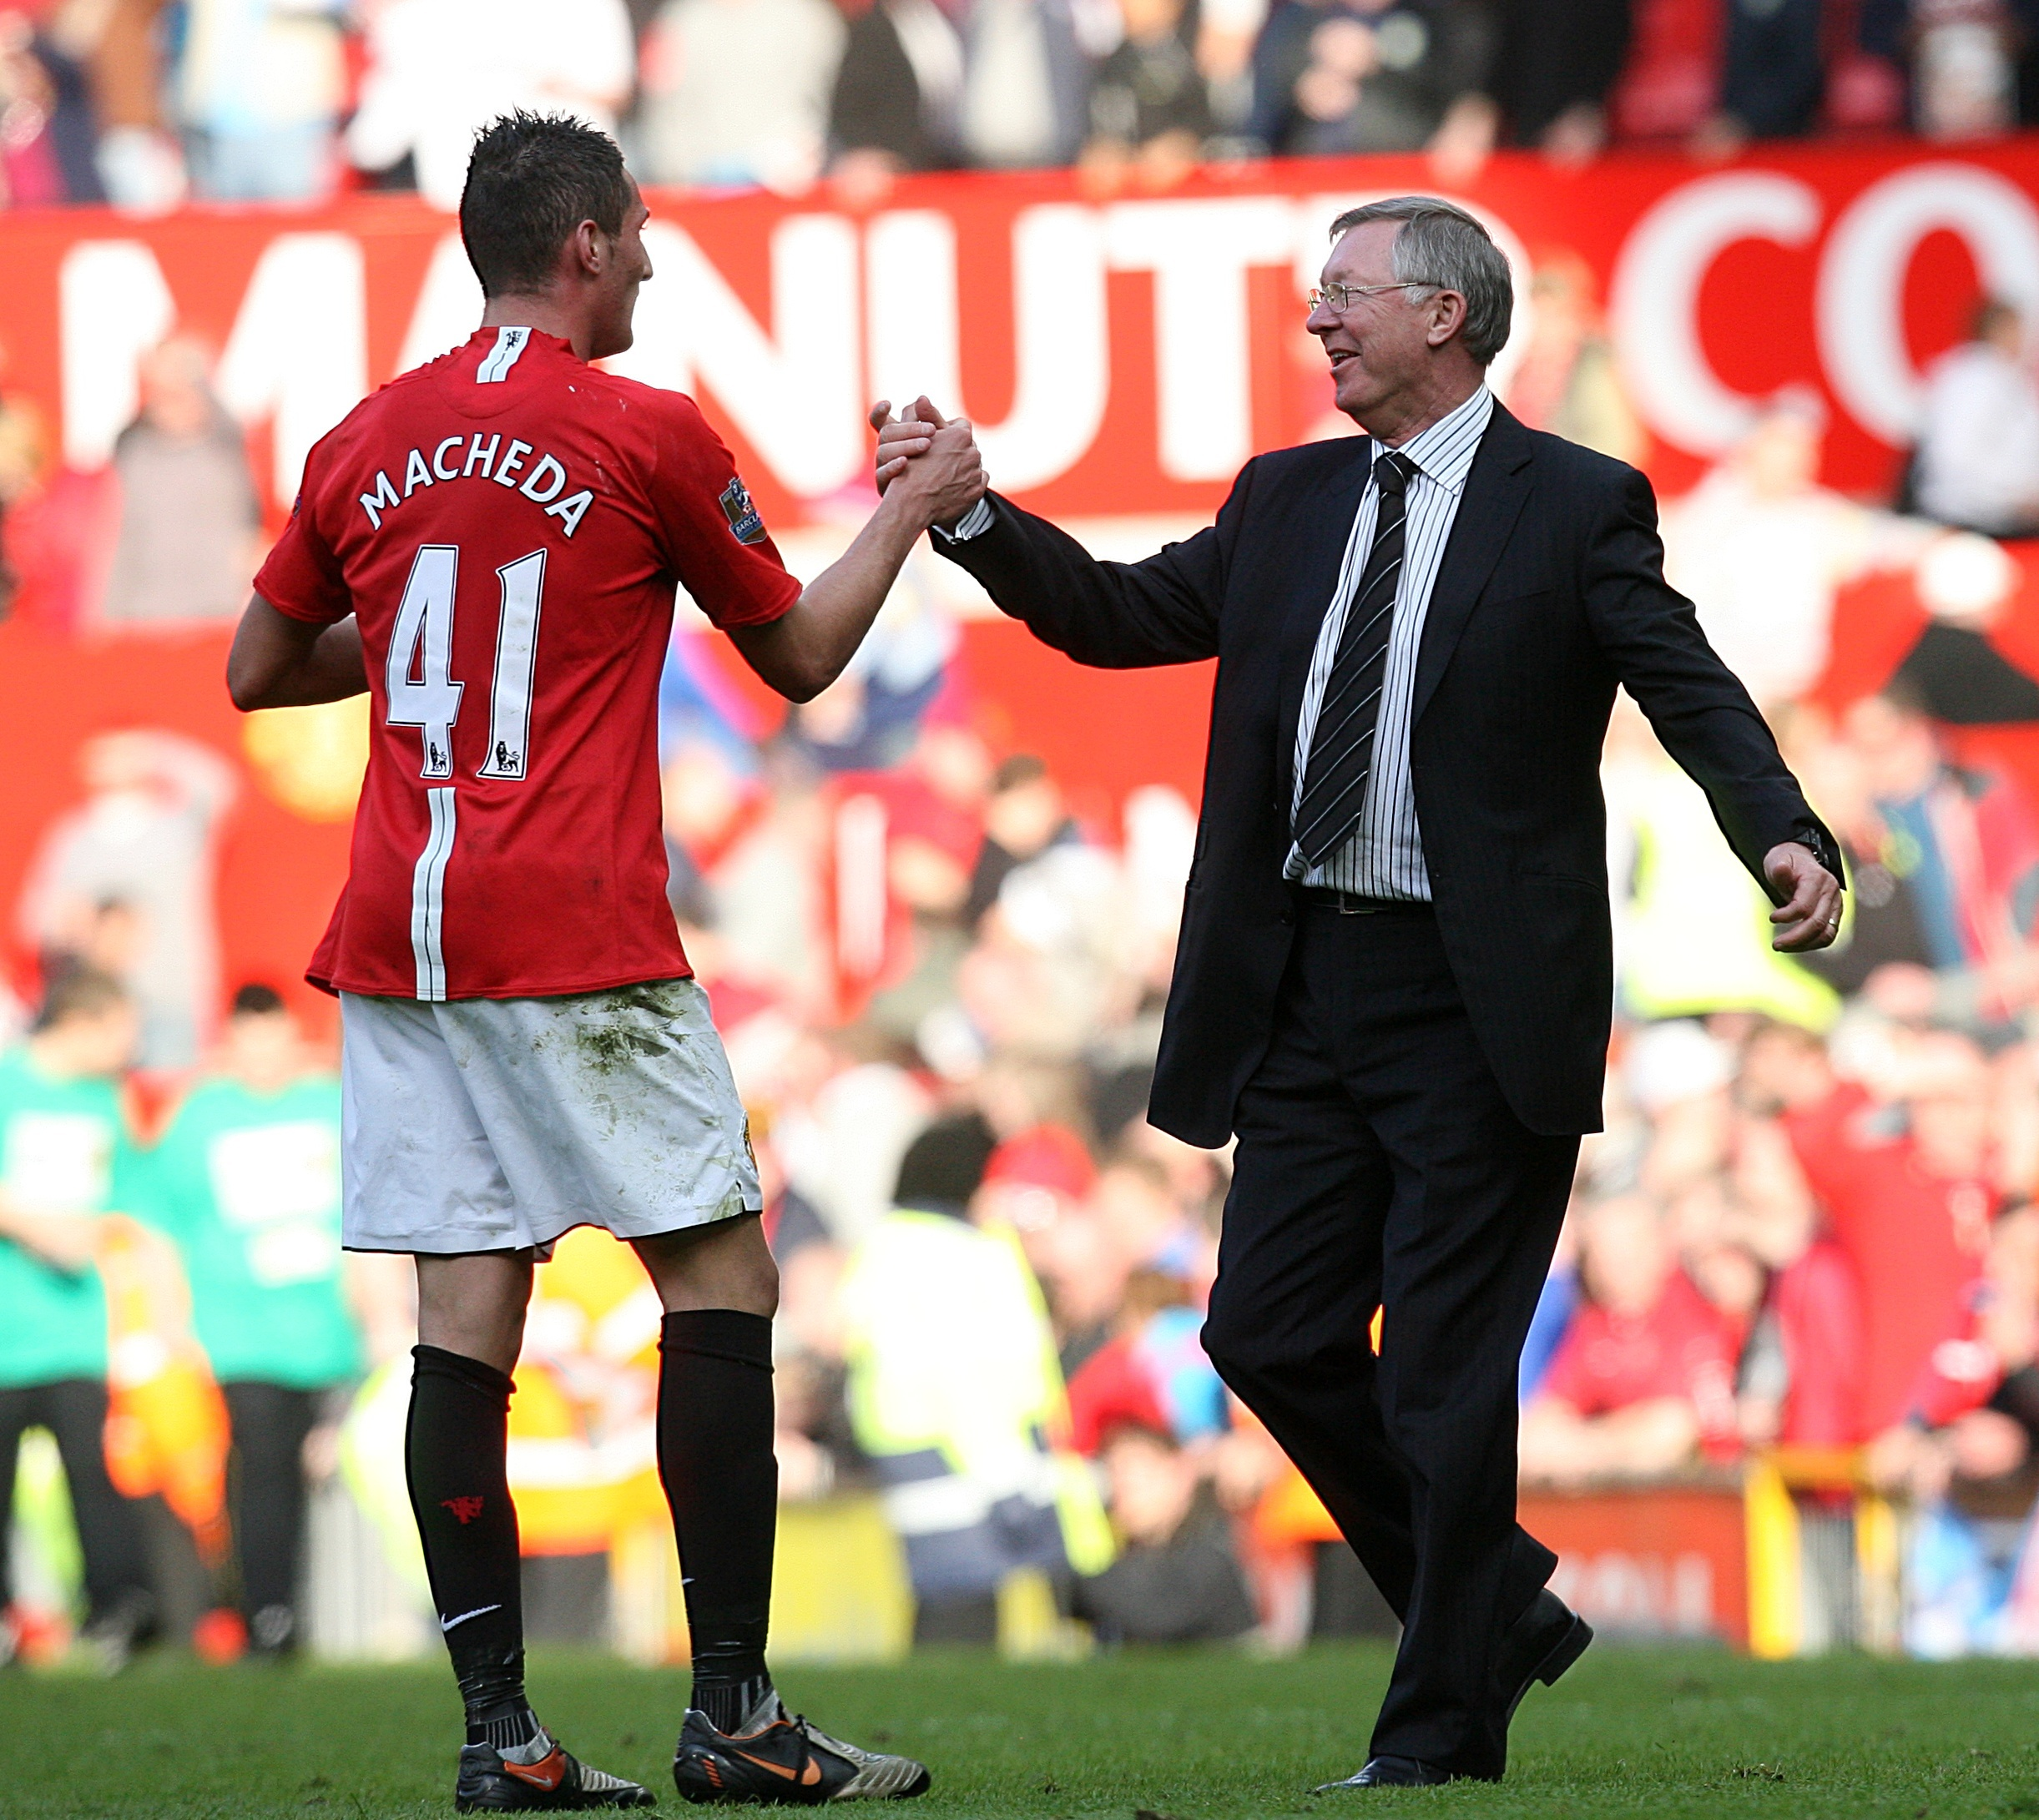 Macheda is congratulated by Sir Alex. Image: PA